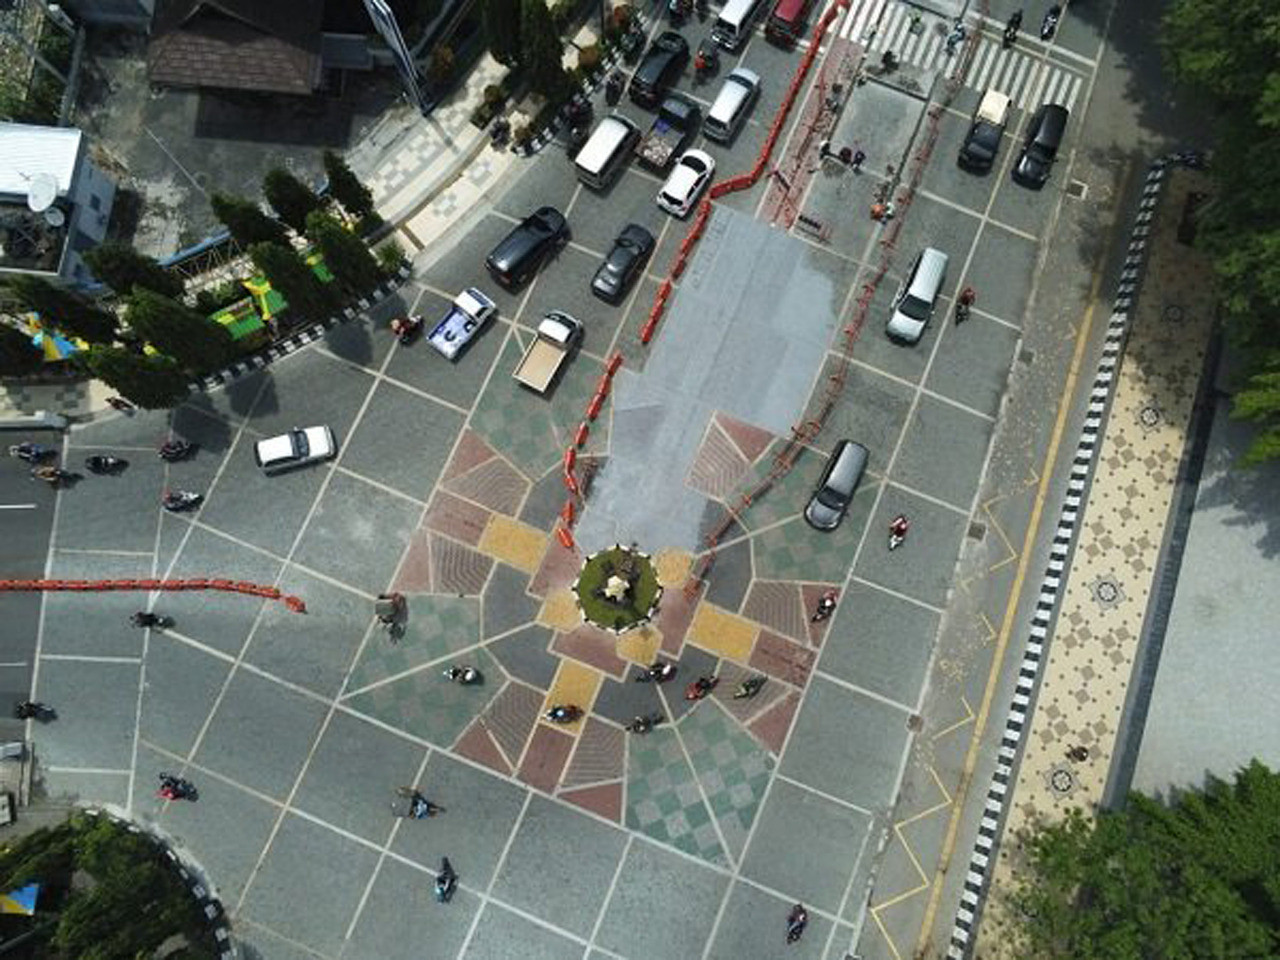 Surakarta to cover cross-shaped road mosaic with paint after complaints from Muslim groups